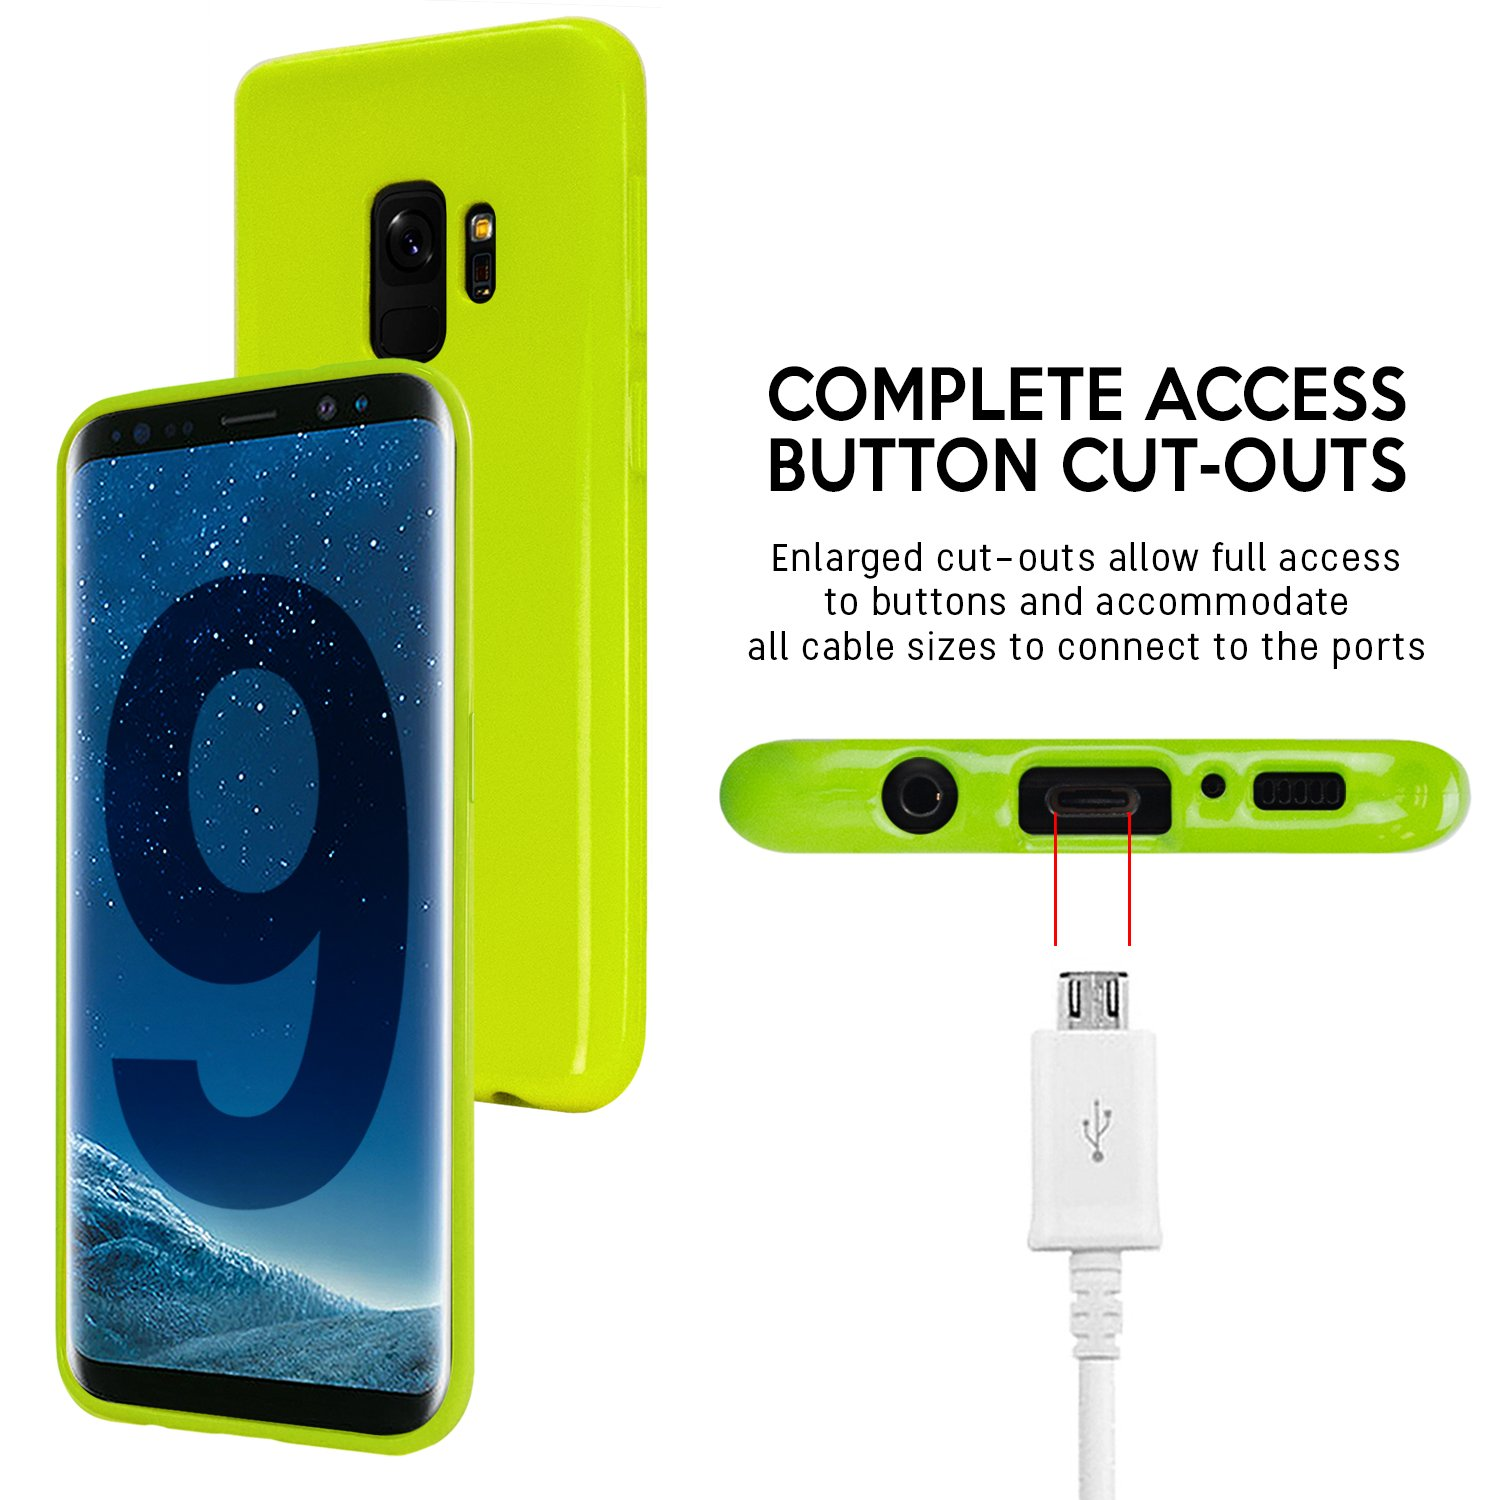 Galaxy S9 Case Thin Slim Goospery Flexible Pearl Iphone 7 Plus Sky Slide Bumper Lime Jelly Rubber Tpu Lightweight Cover Impact Resistant For Samsung